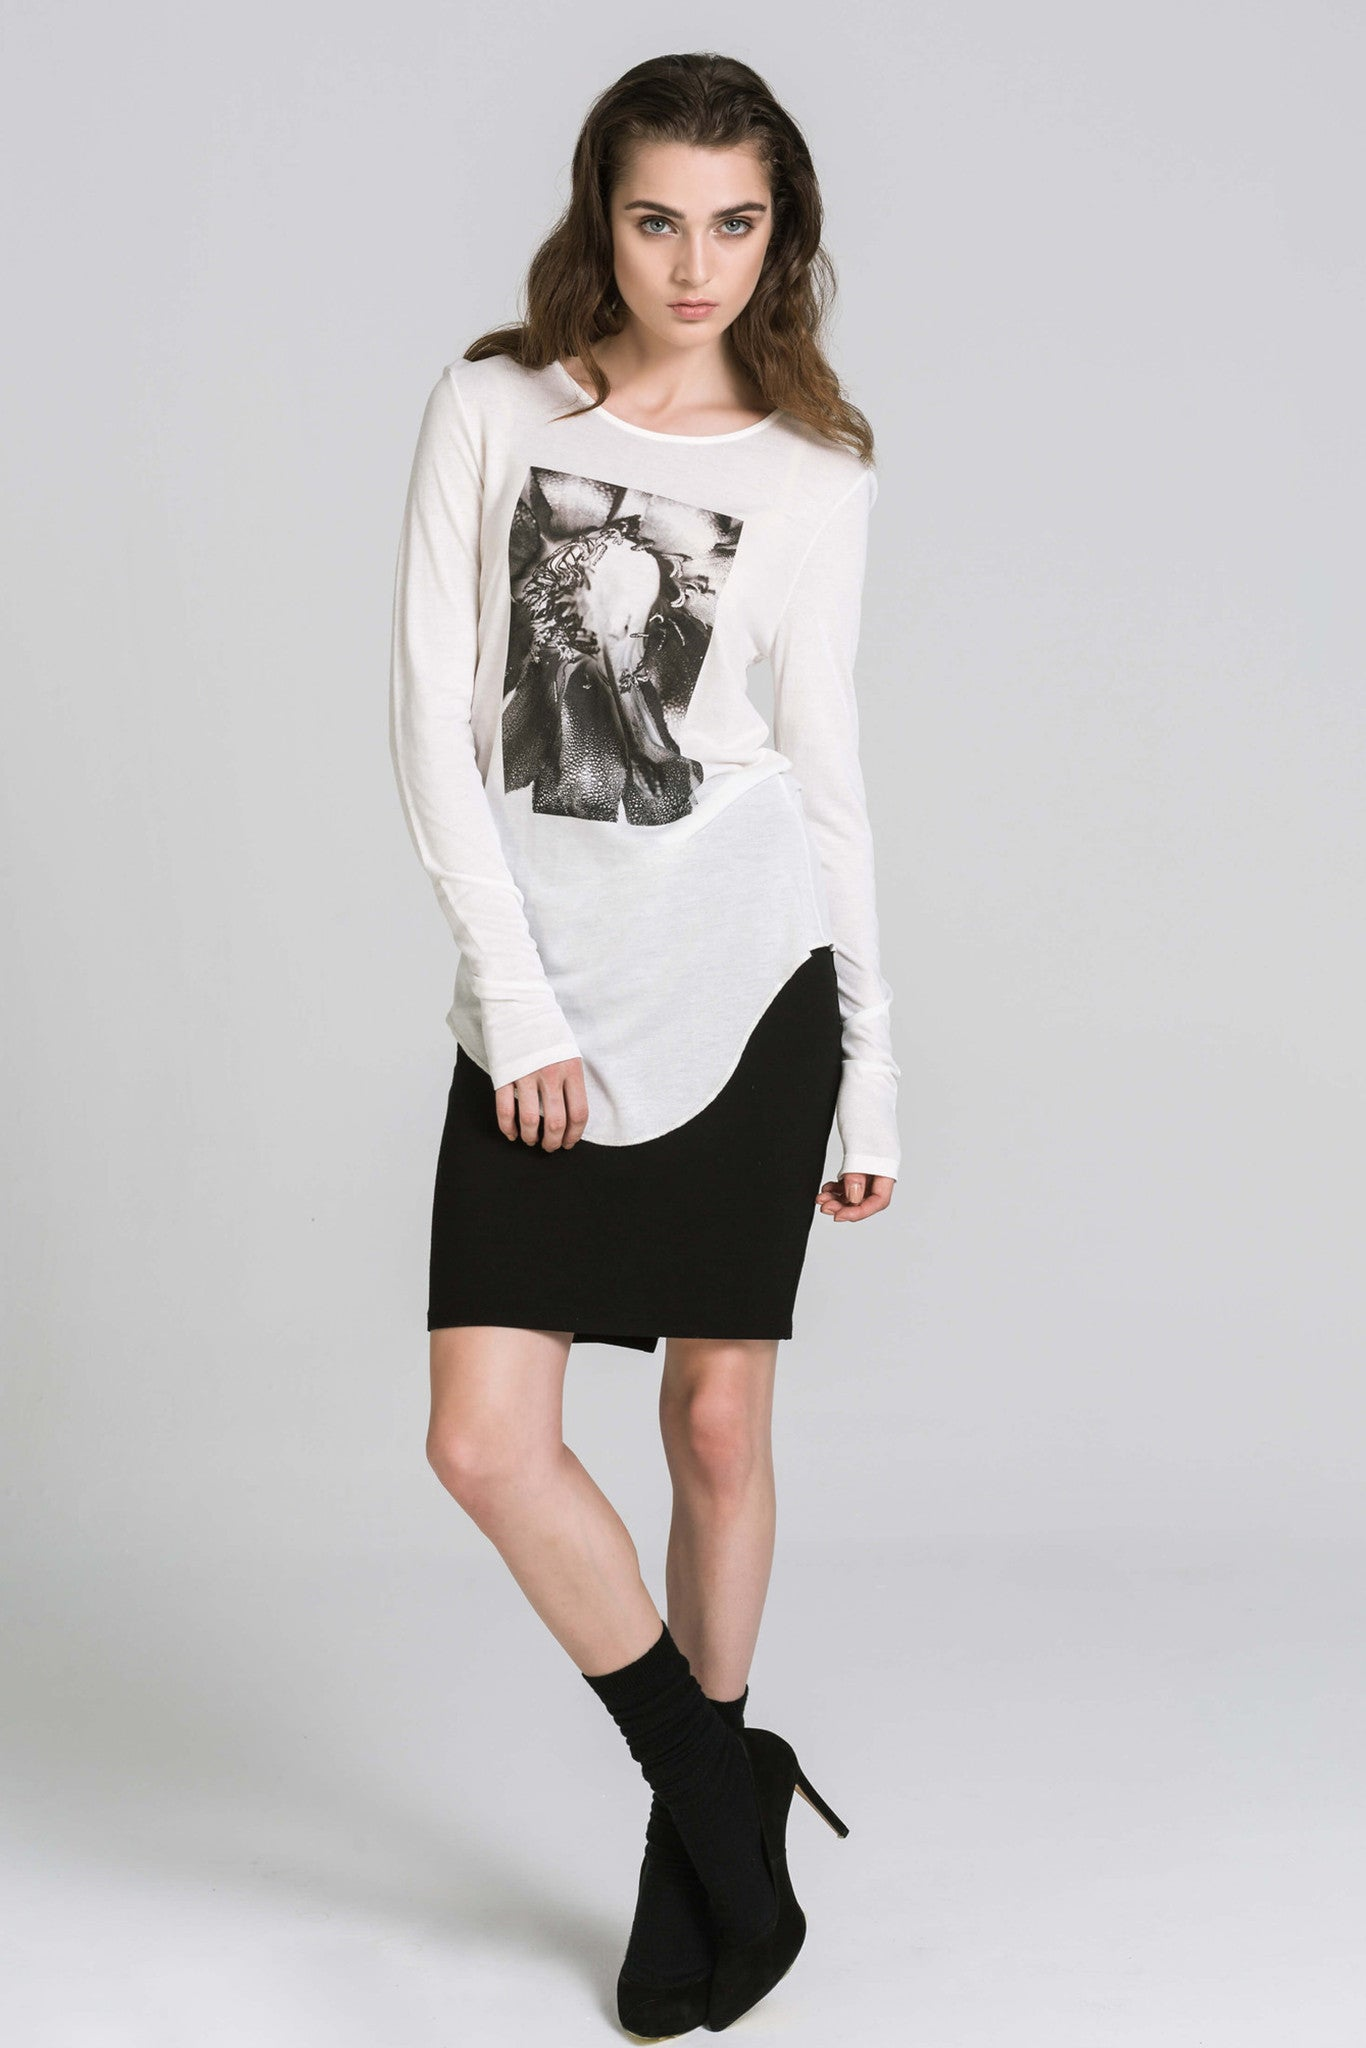 FLOWER POWER LS WHITE TEE